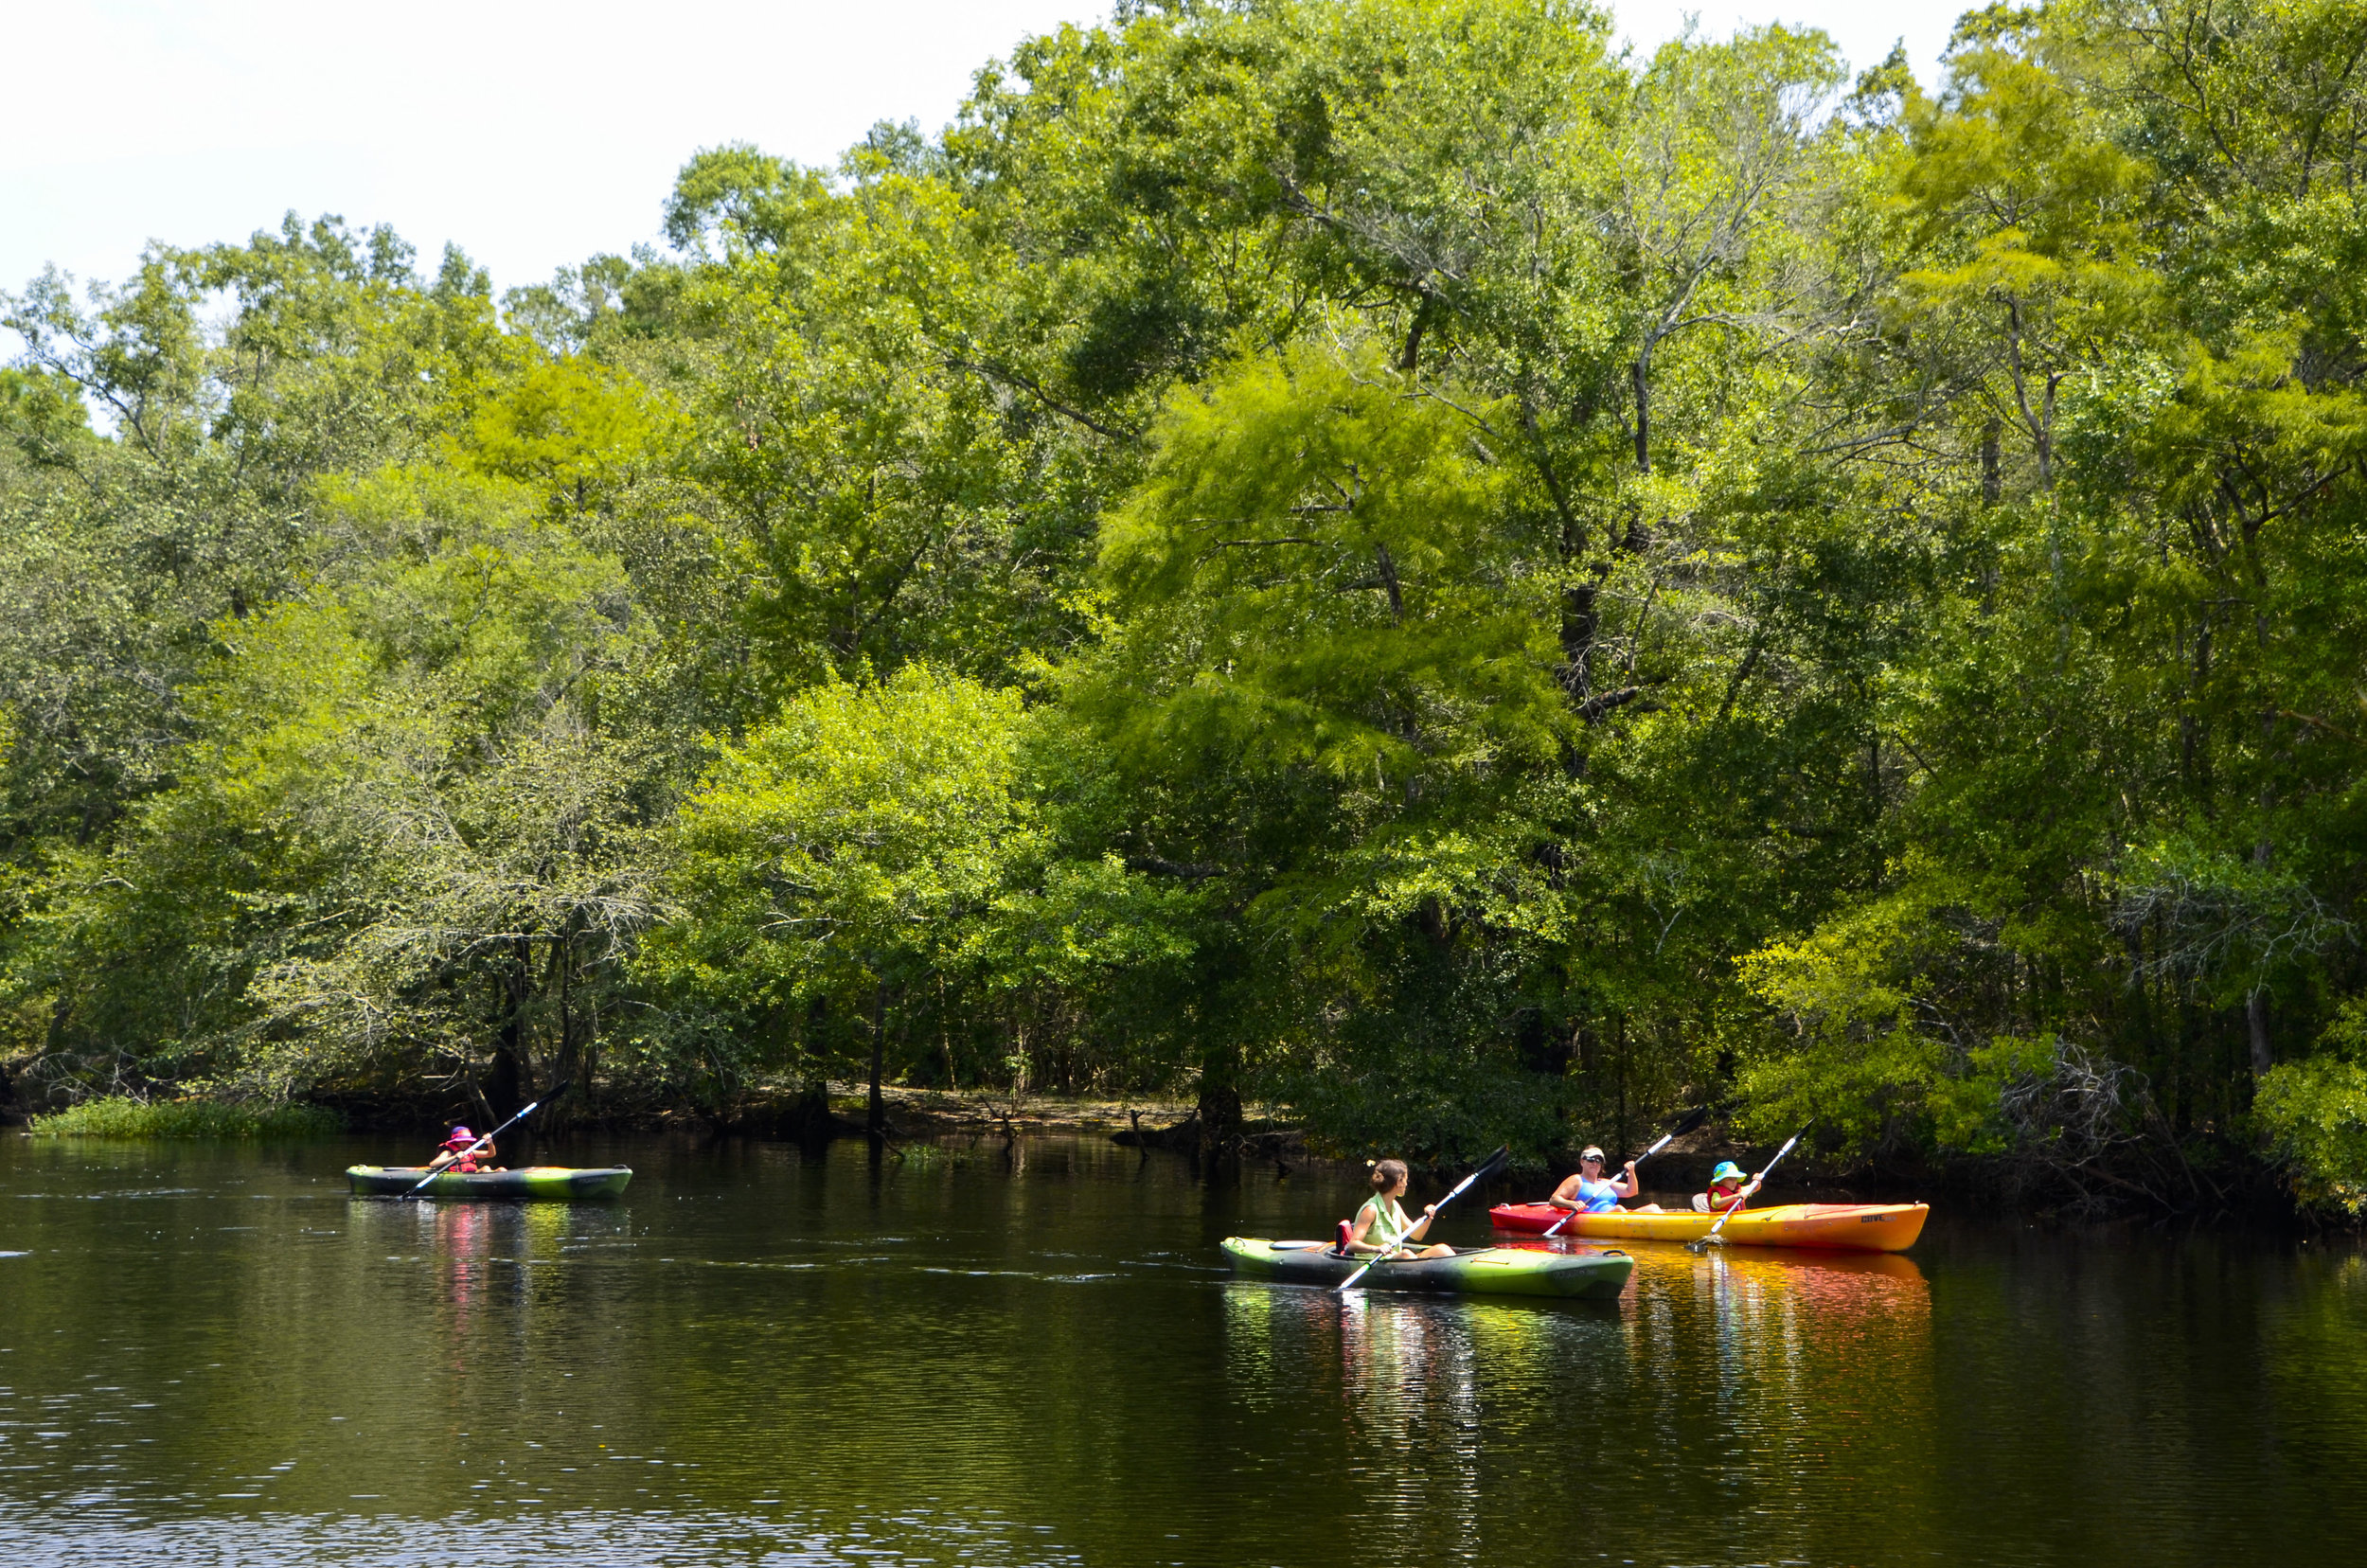 Paddlers on the Waccamaw River. [Note: The SCDNR strongly urges all boaters to wear an approved PDF at all times while on the water.]